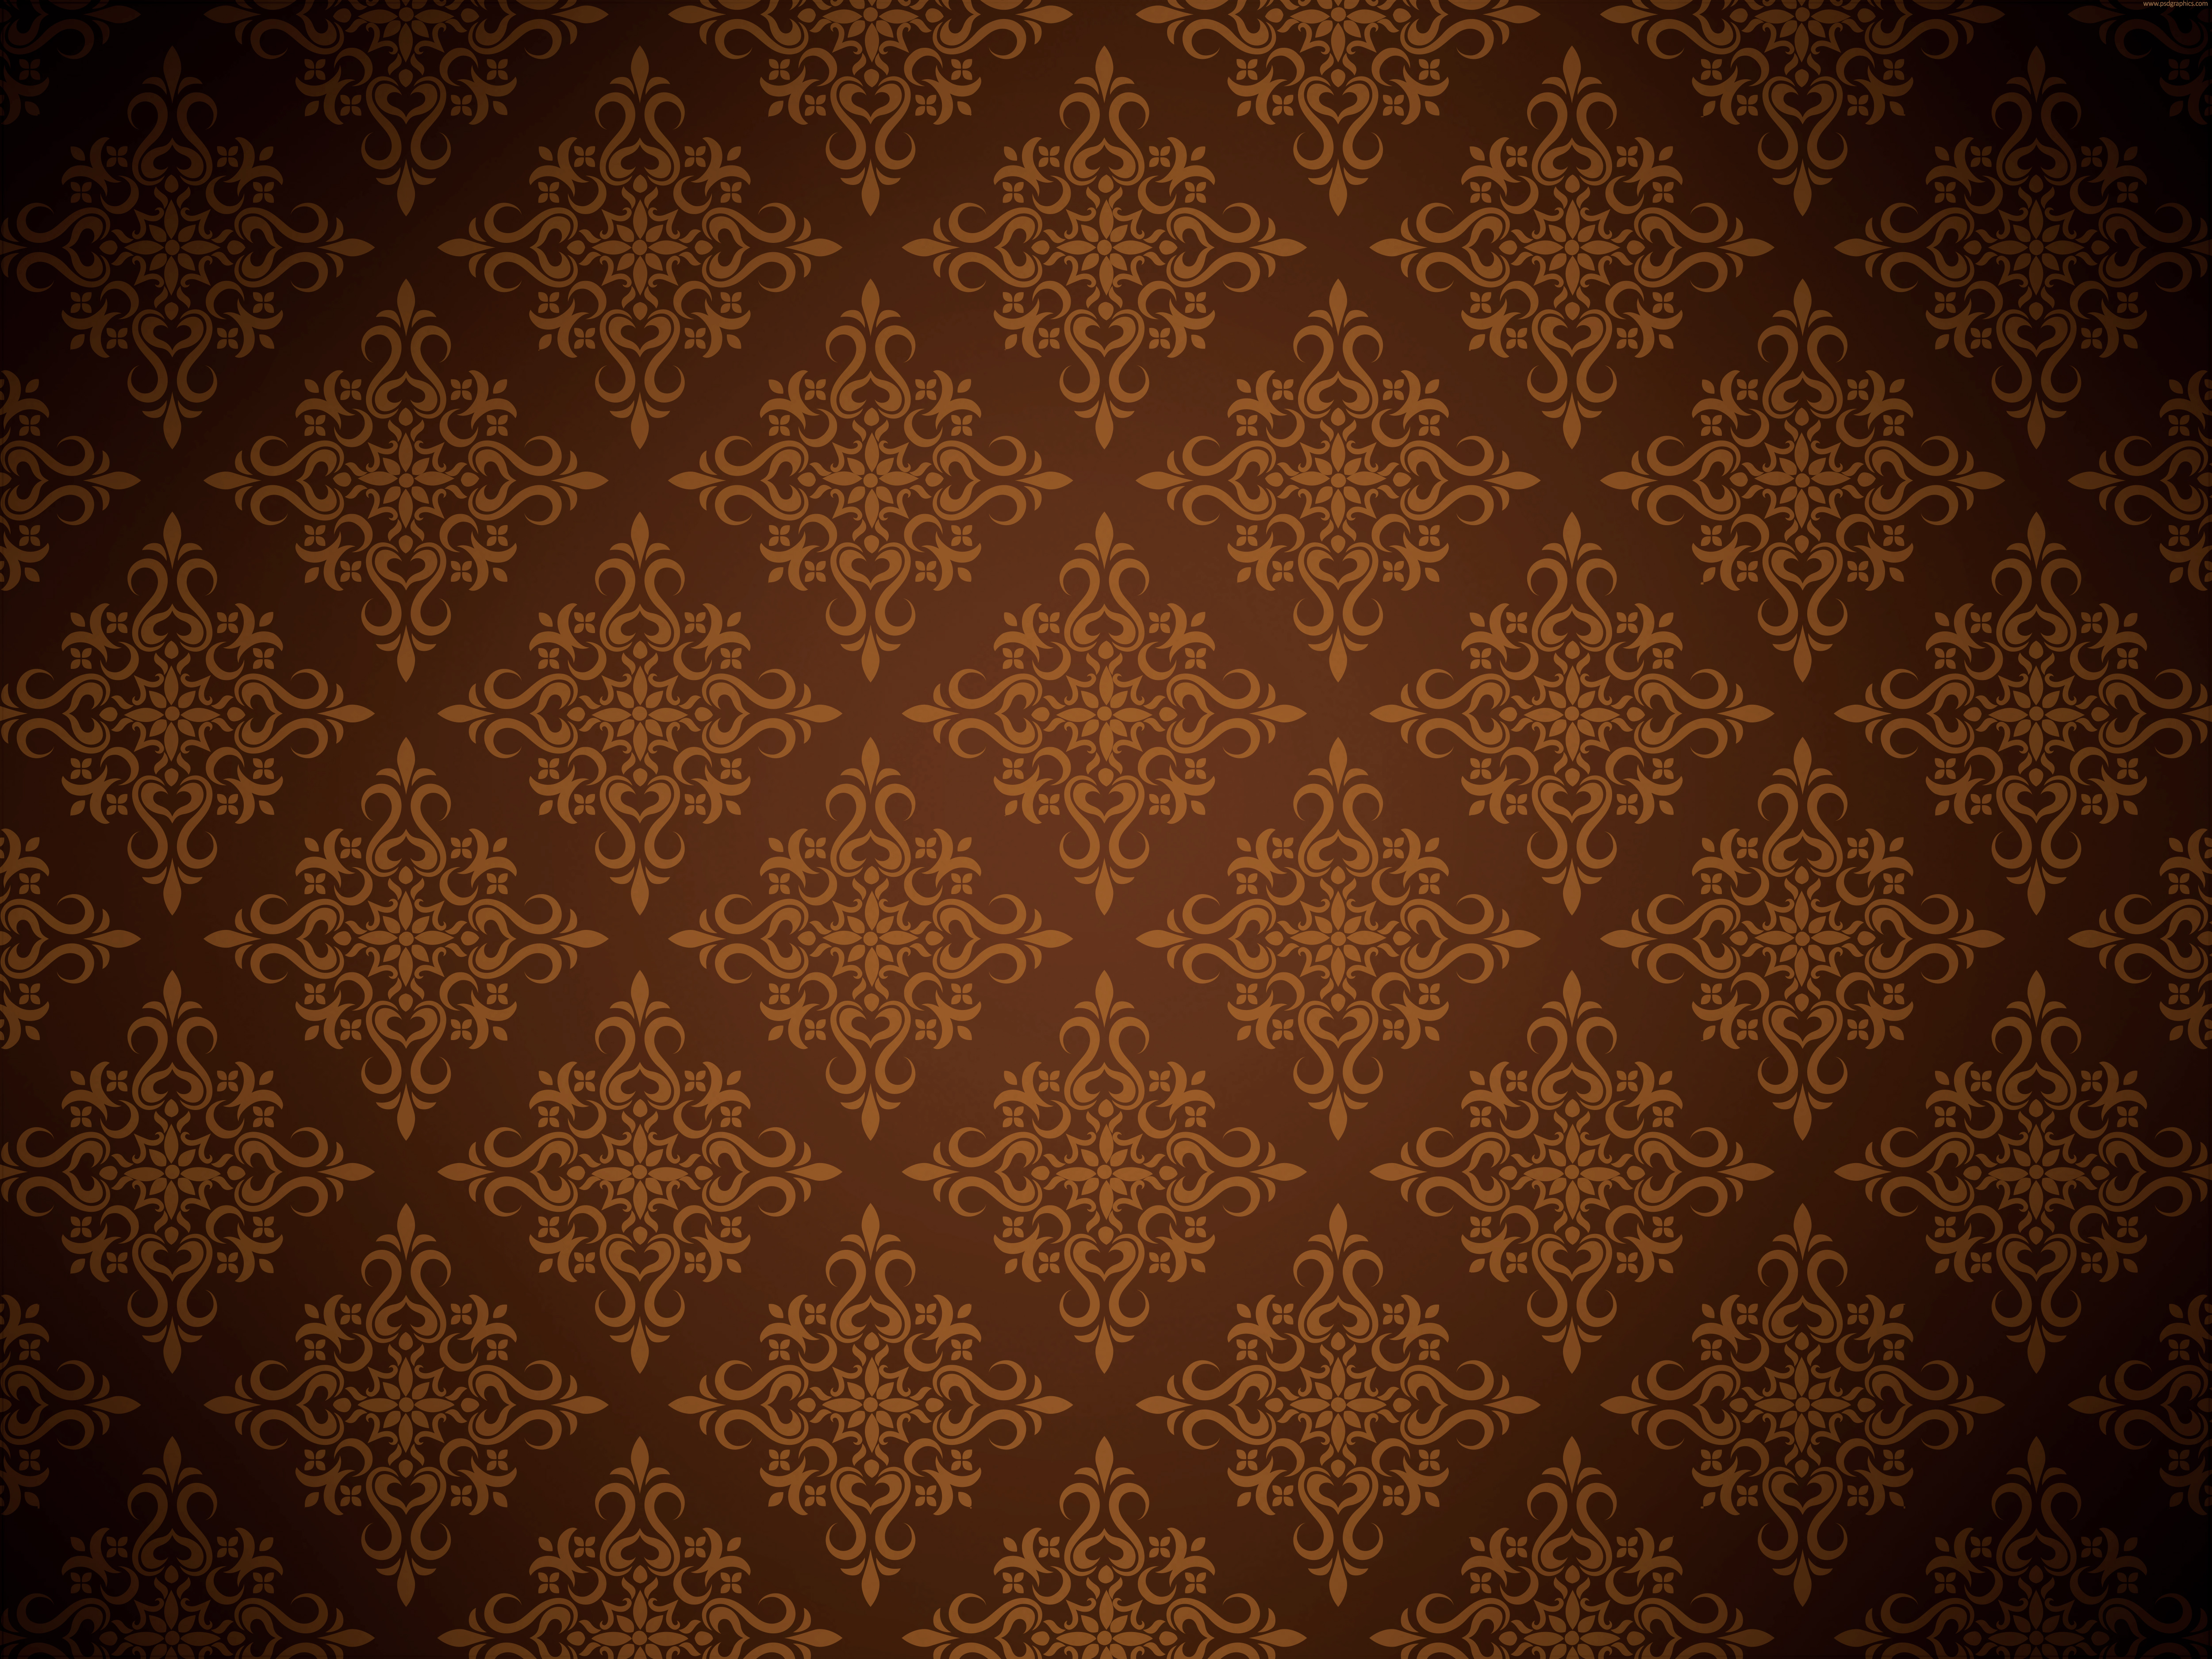 Brown background wallpaper wallpapersafari for Plain background images for photoshop